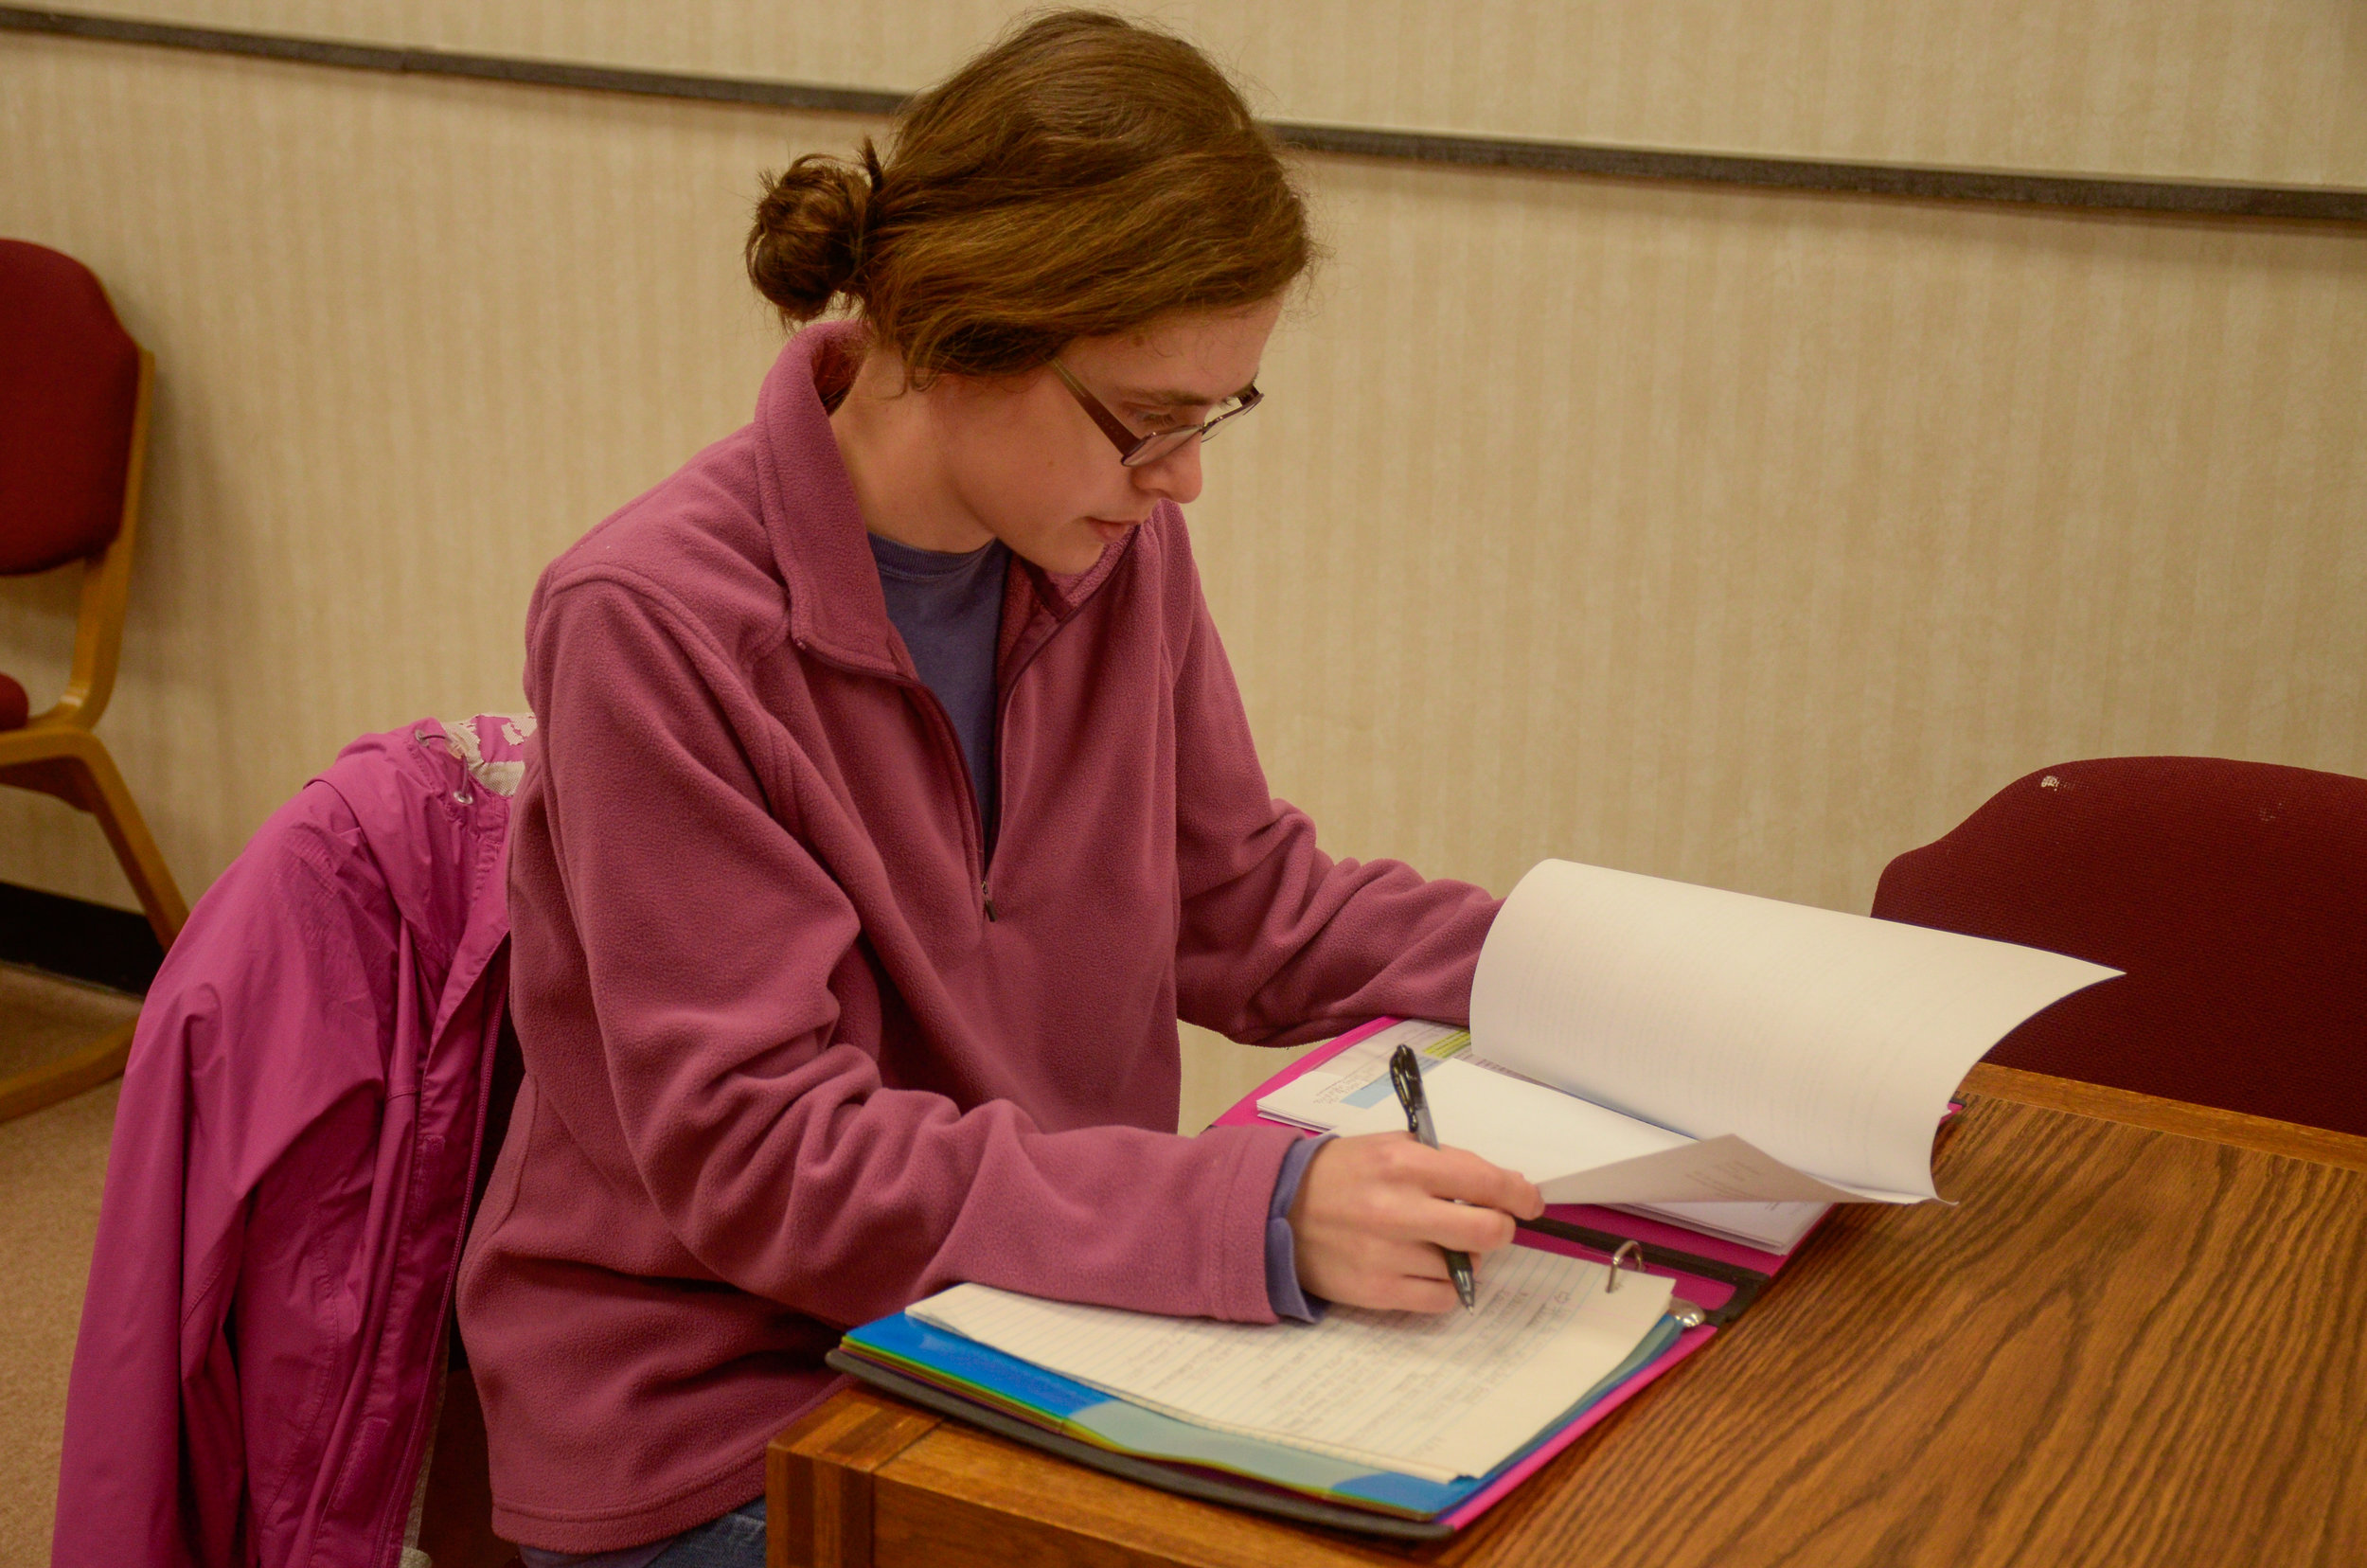 Junior Emily Powers kicks off the semester by practicing good habits like spending her time studying in the library to prepare for an upcoming test.